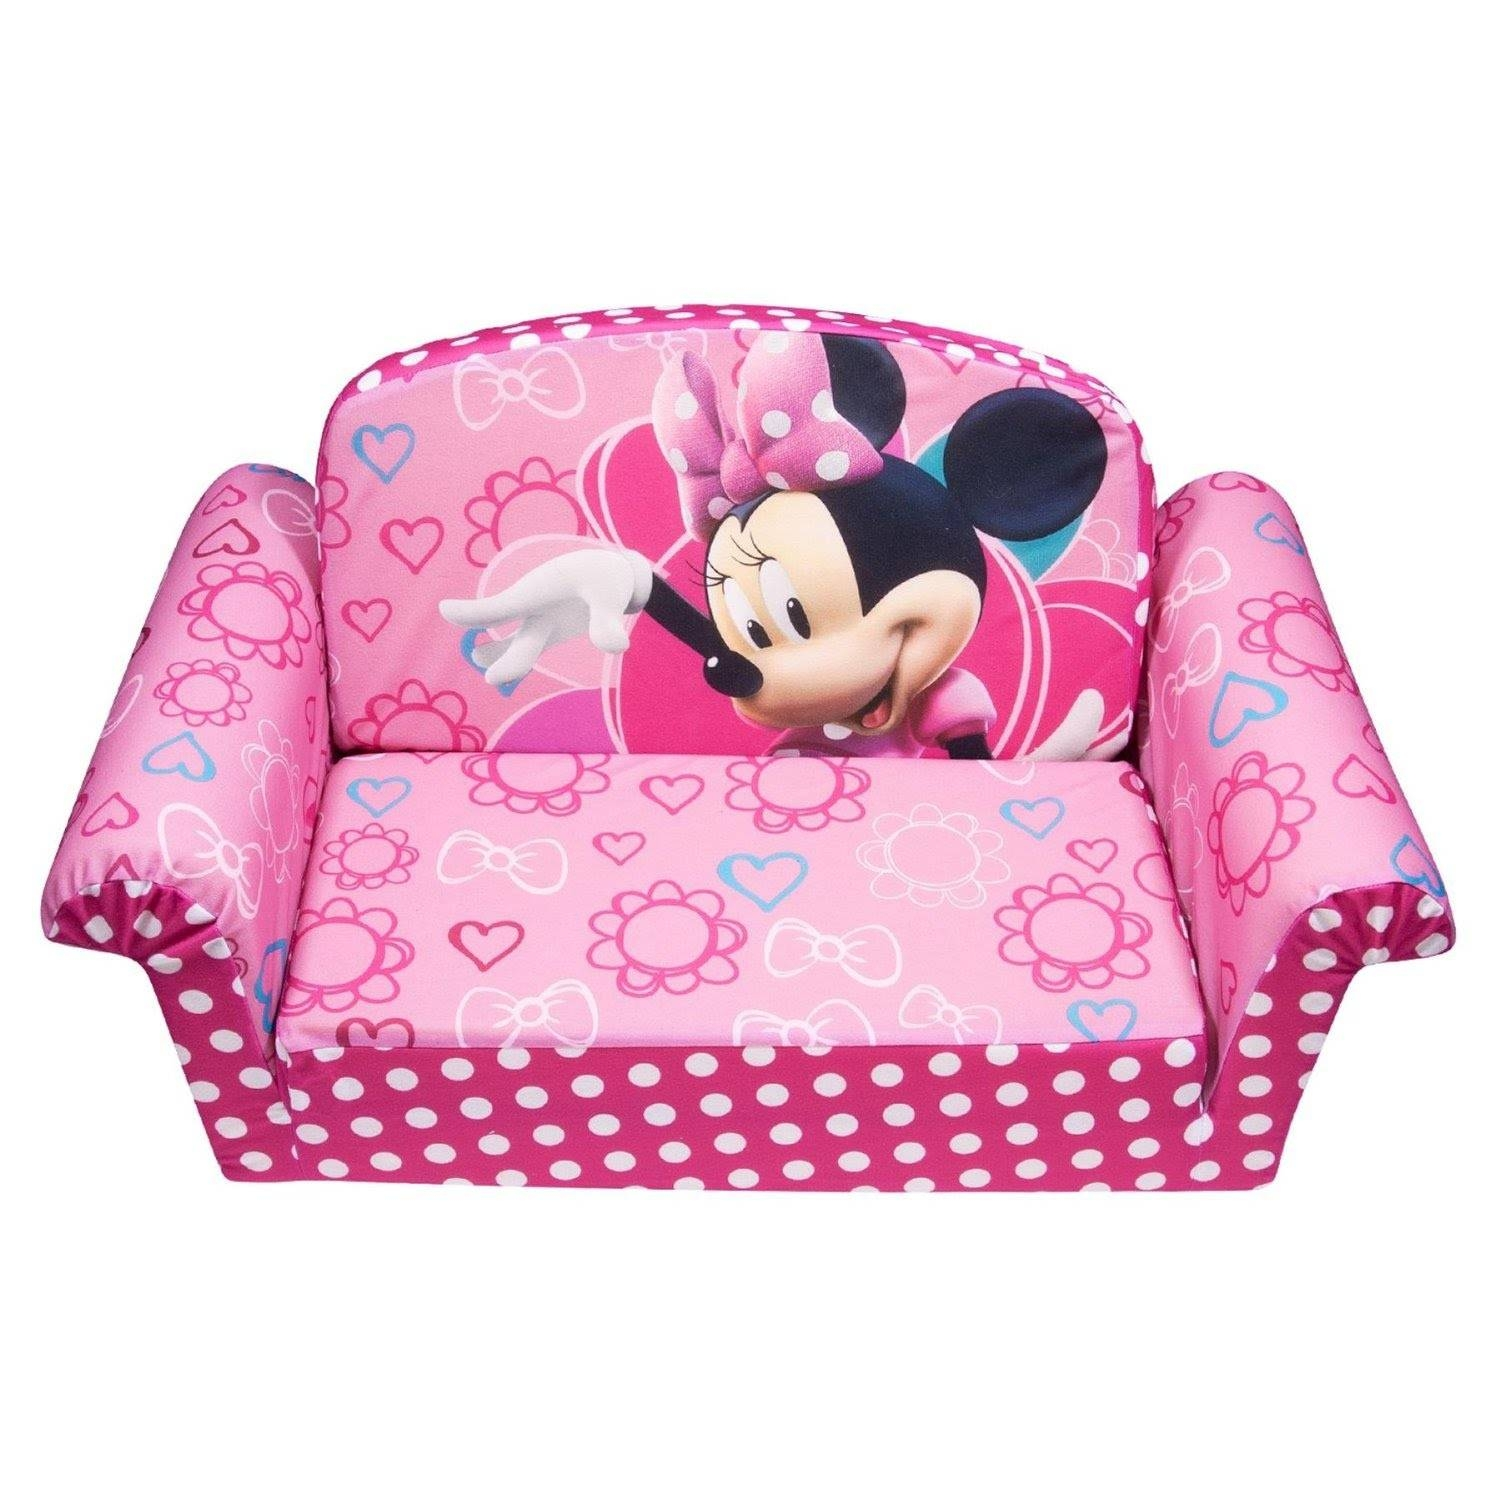 Review: Marshmallow Children's Furniture - 2 In 1 Flip Open Sofa with regard to Sofa Beds For Baby (Image 12 of 15)